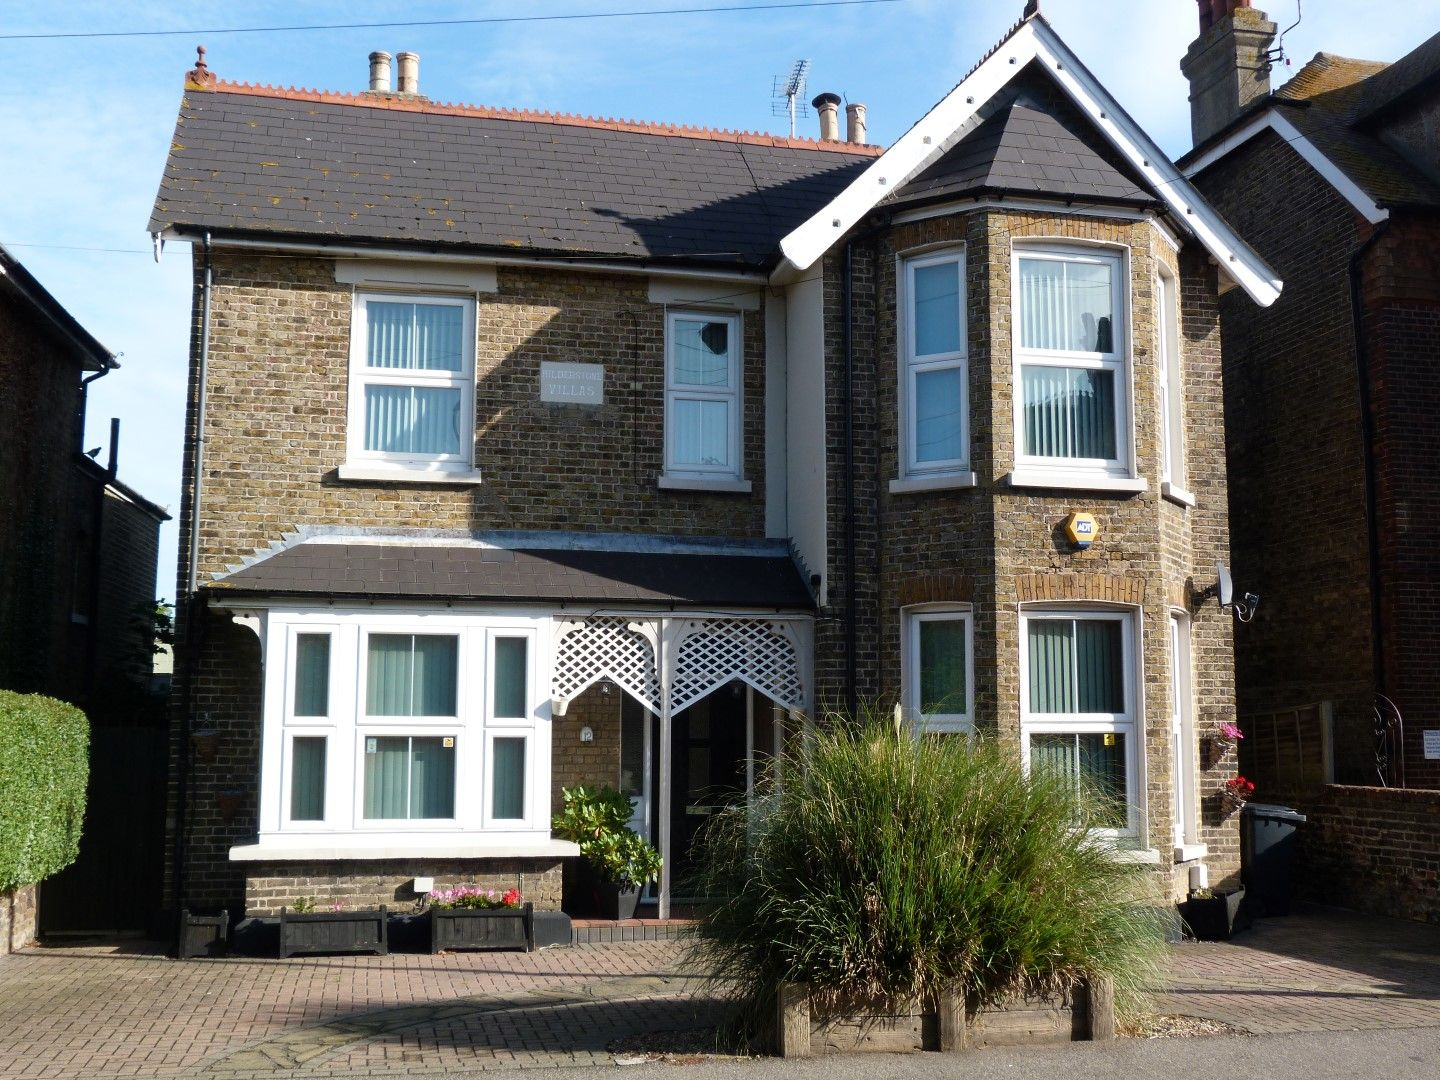 5 bedroom detached house For Sale in Broadstairs - Property photograph